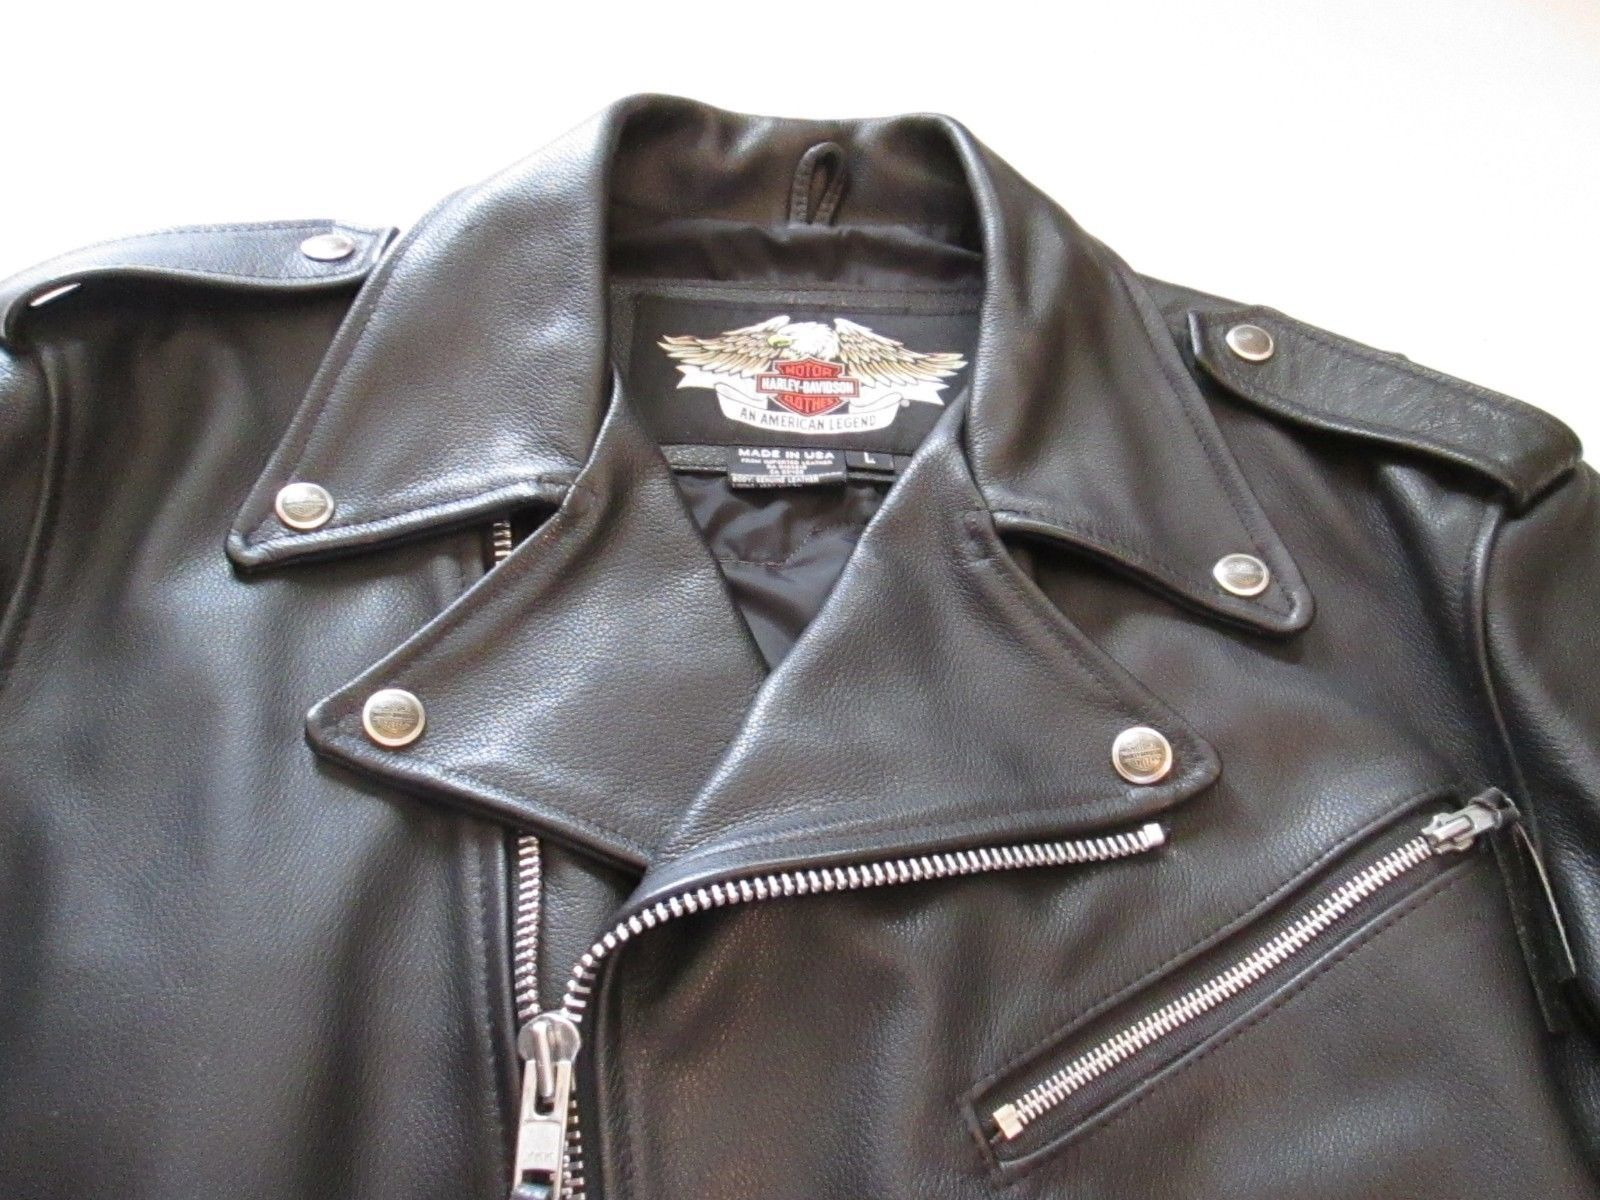 Harley Davidson Mens Basic Skins Flag Leather Jacket w